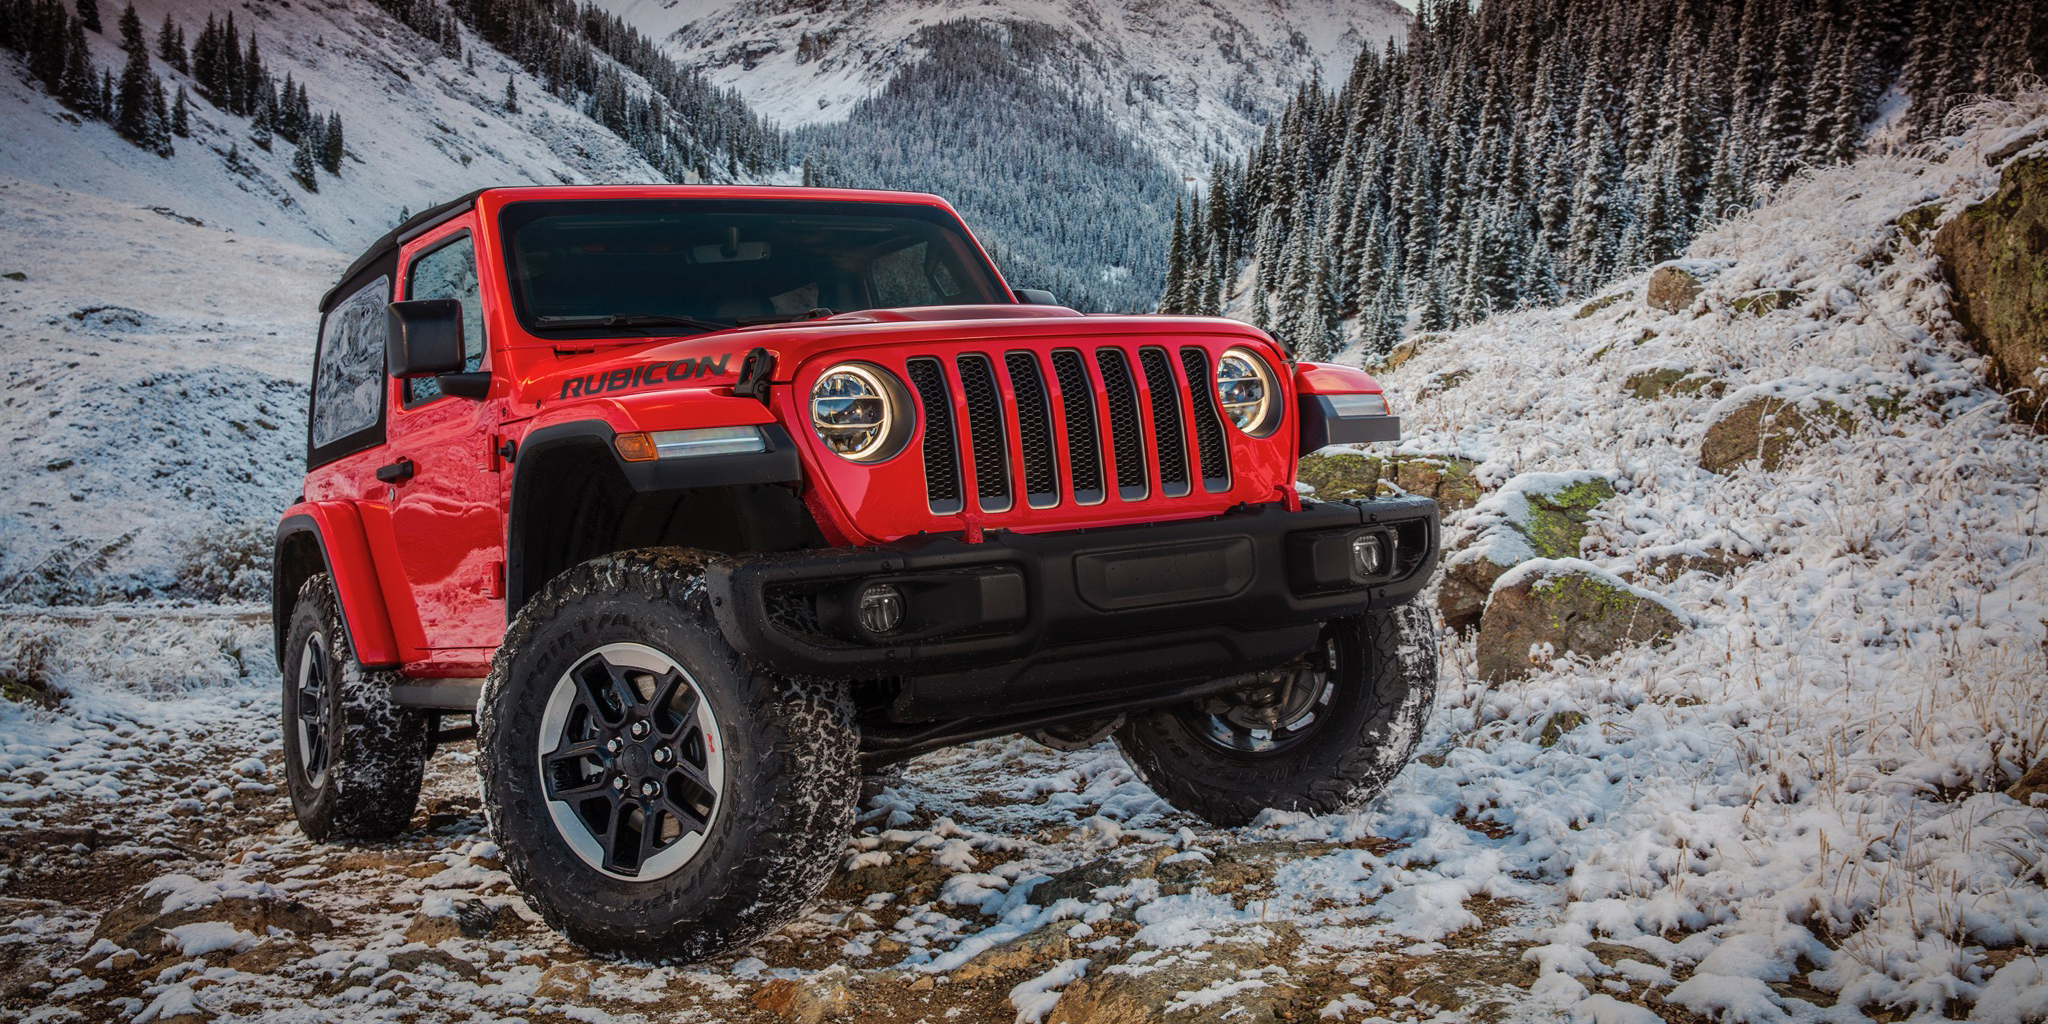 Electrified Jeep Wrangler coming in 2020 - Photos (1 of 4)